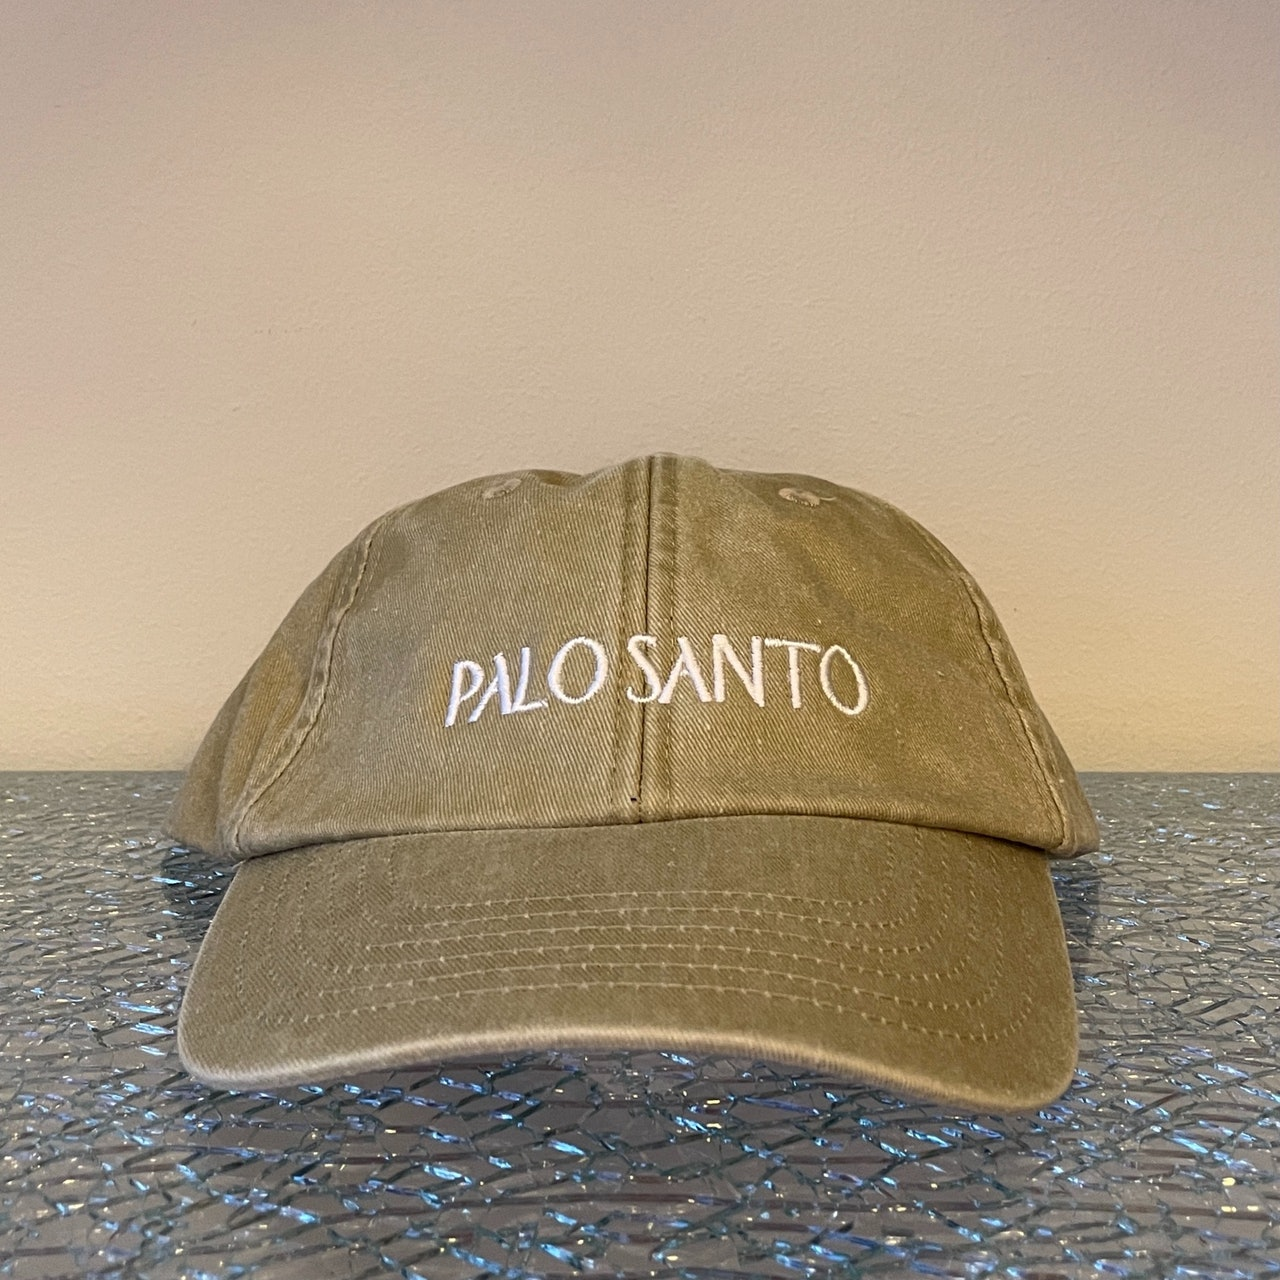 Hat, Palo Santo, washed out beige/white